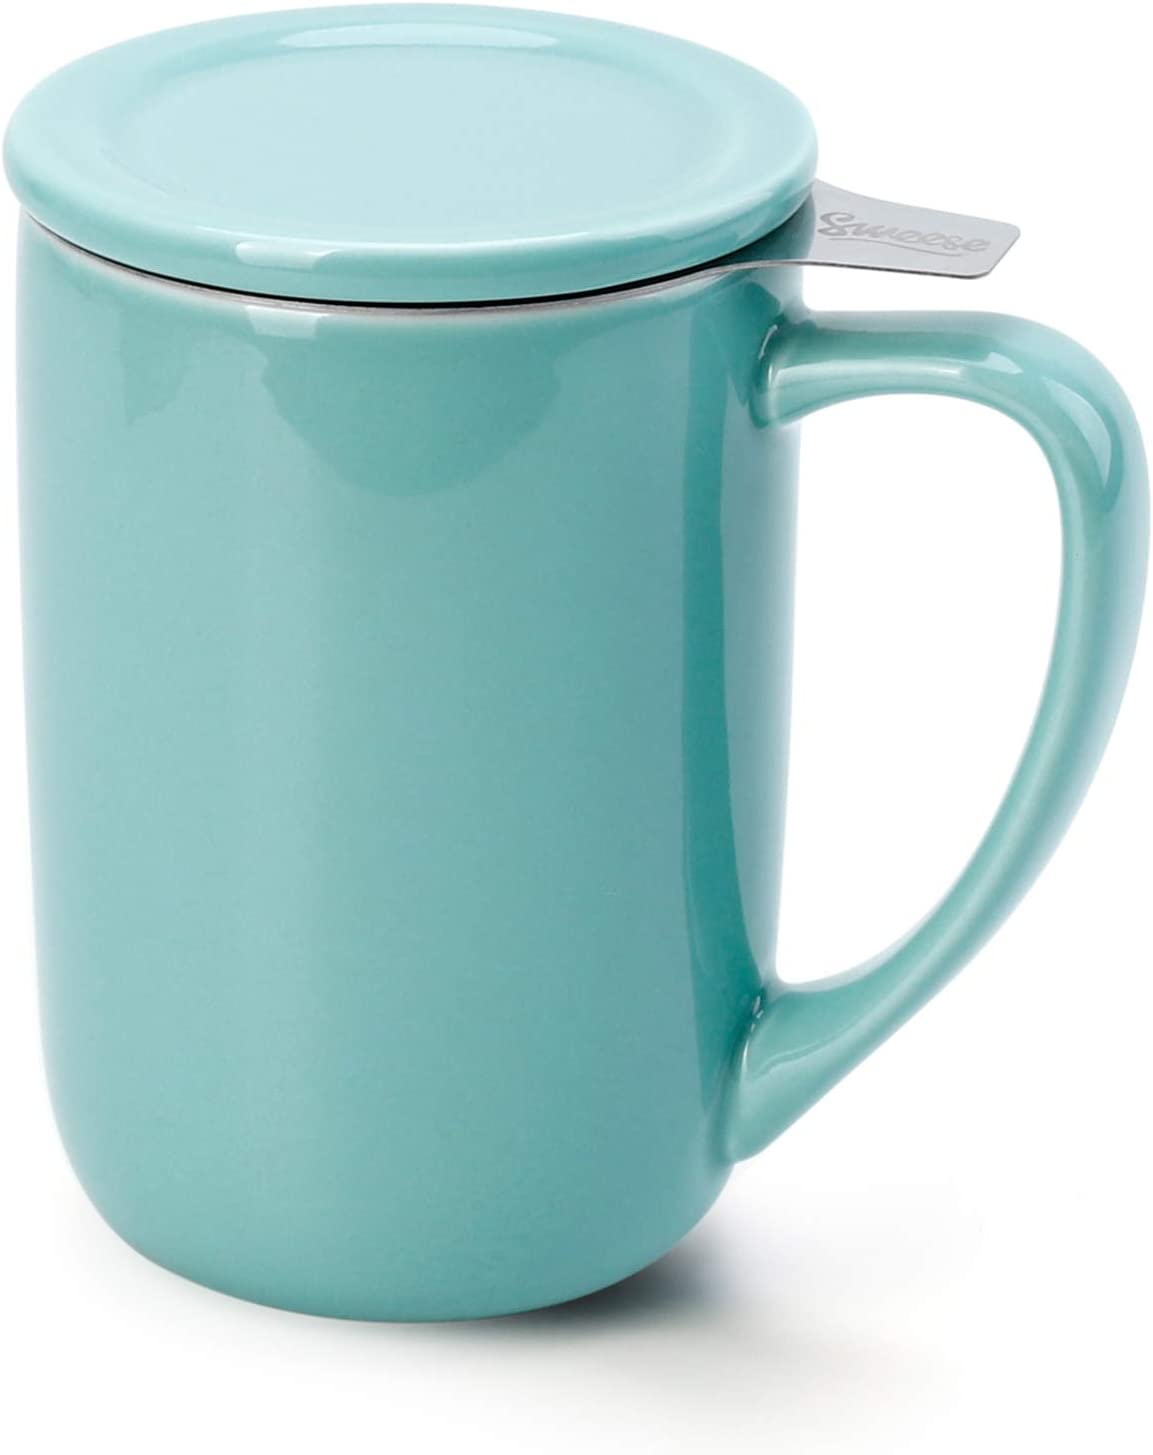 Sweese 203.102 Ceramic Tea Mug with Infuser and Lid, Single Cup Loose Tea Brewing System, Draw Your Own Design, 16 OZ, Turquoise